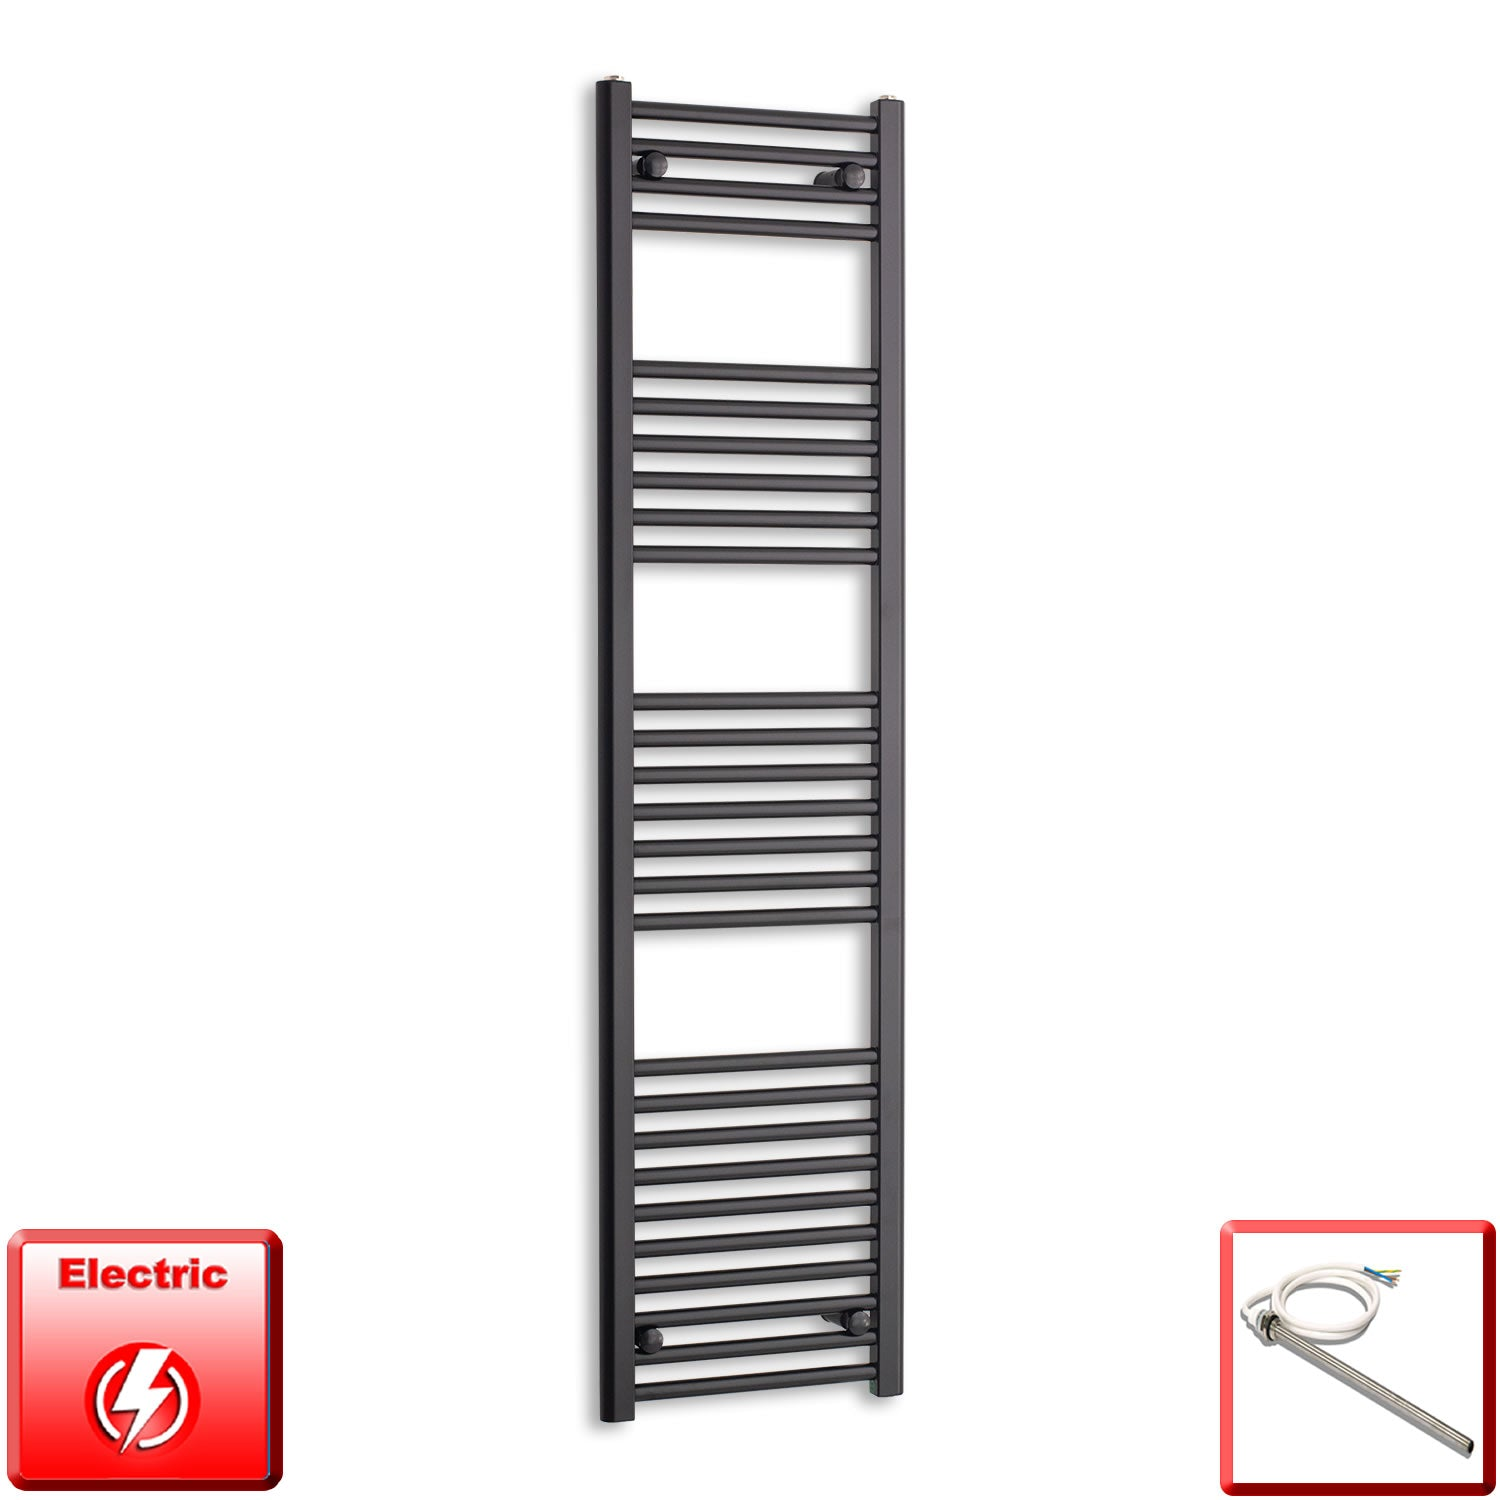 400mm Wide 1600mm High Pre-Filled Black Electric Towel Rail Radiator With Single Heat Element